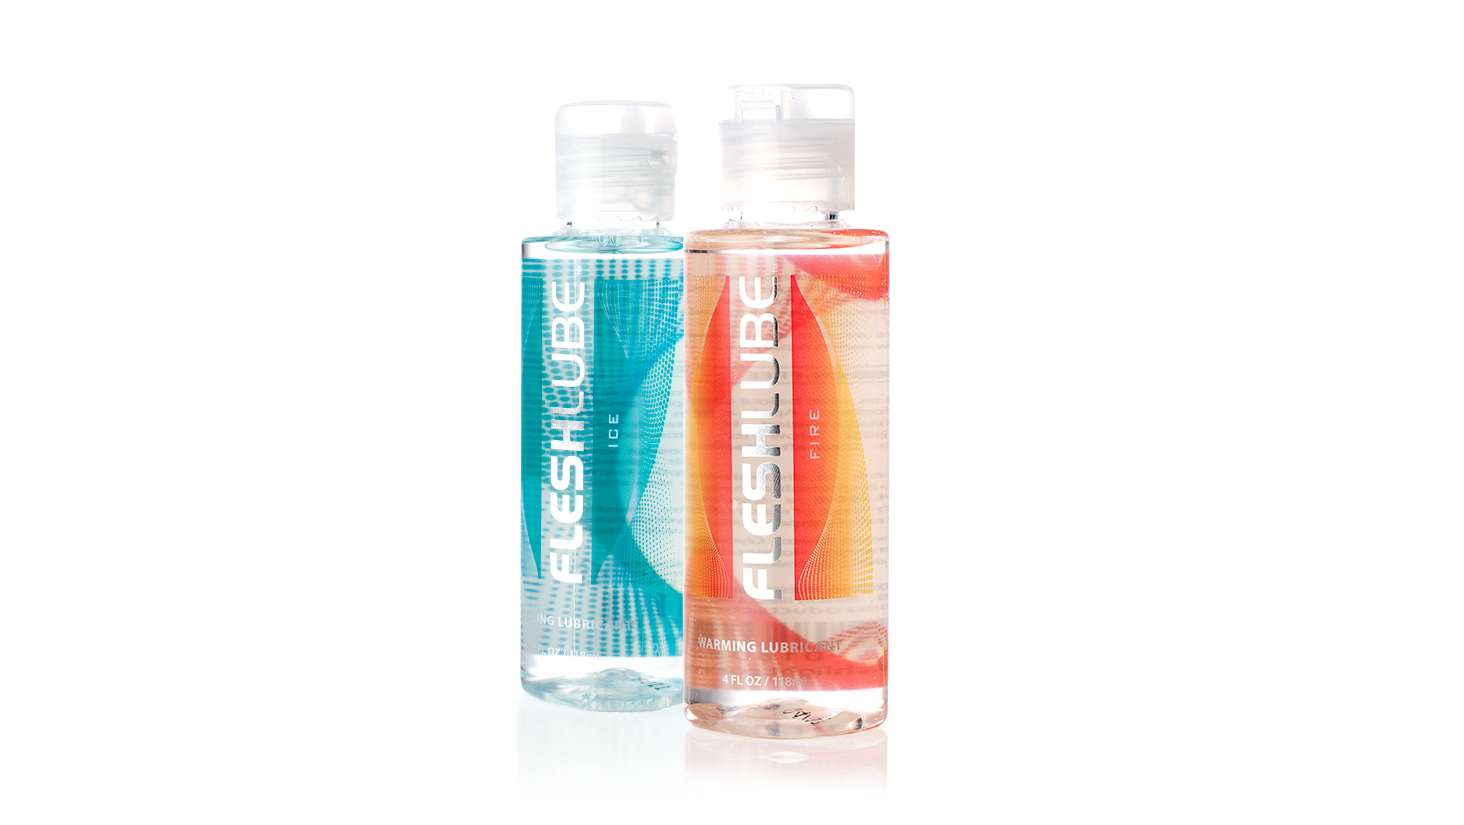 Fleshlube™ Fire & Ice Pack (4oz) slider image.